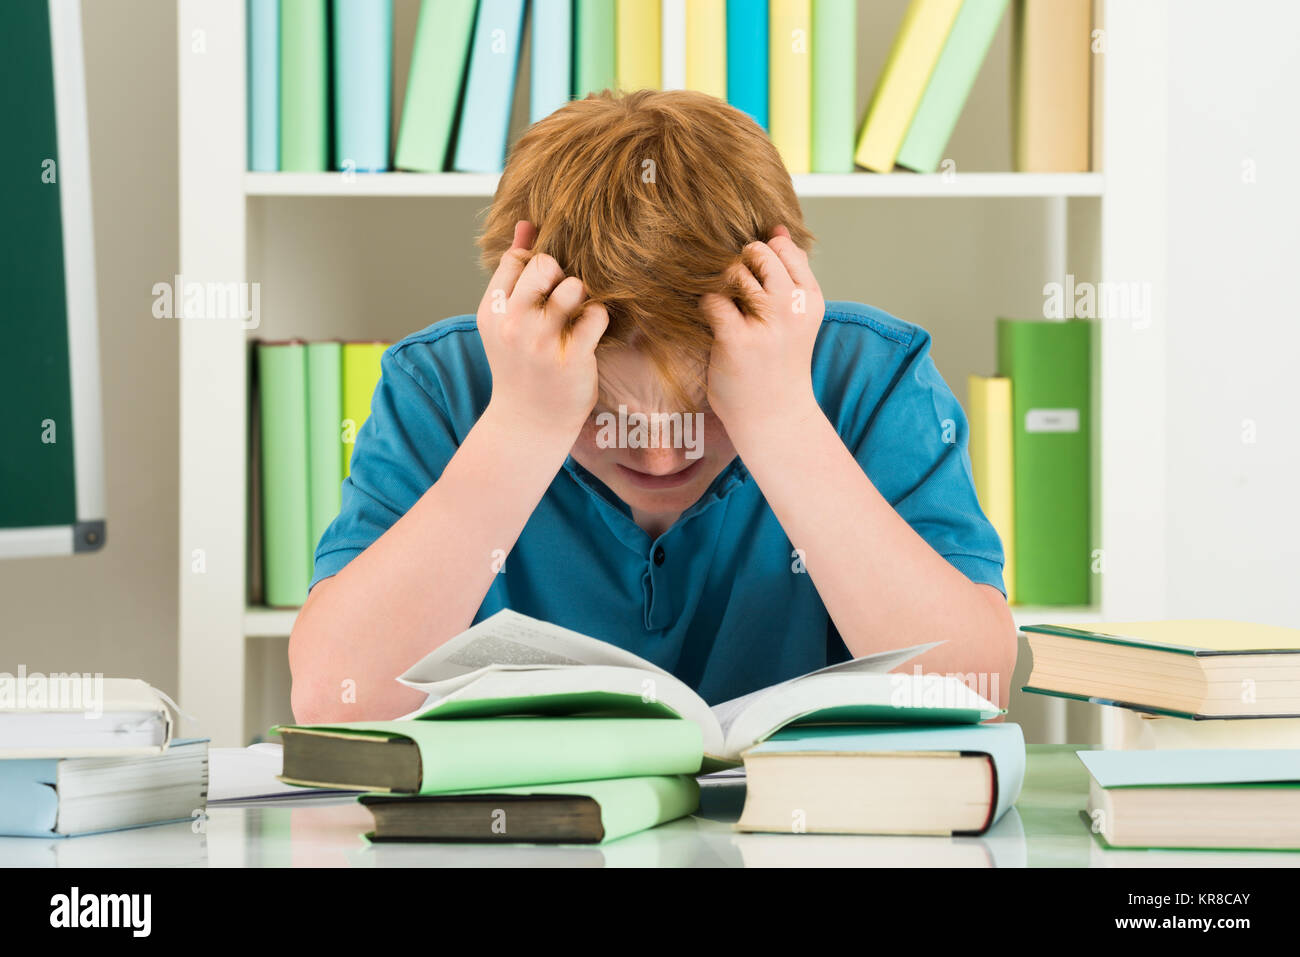 Exhausted Boy Studying In Library Stock Photo